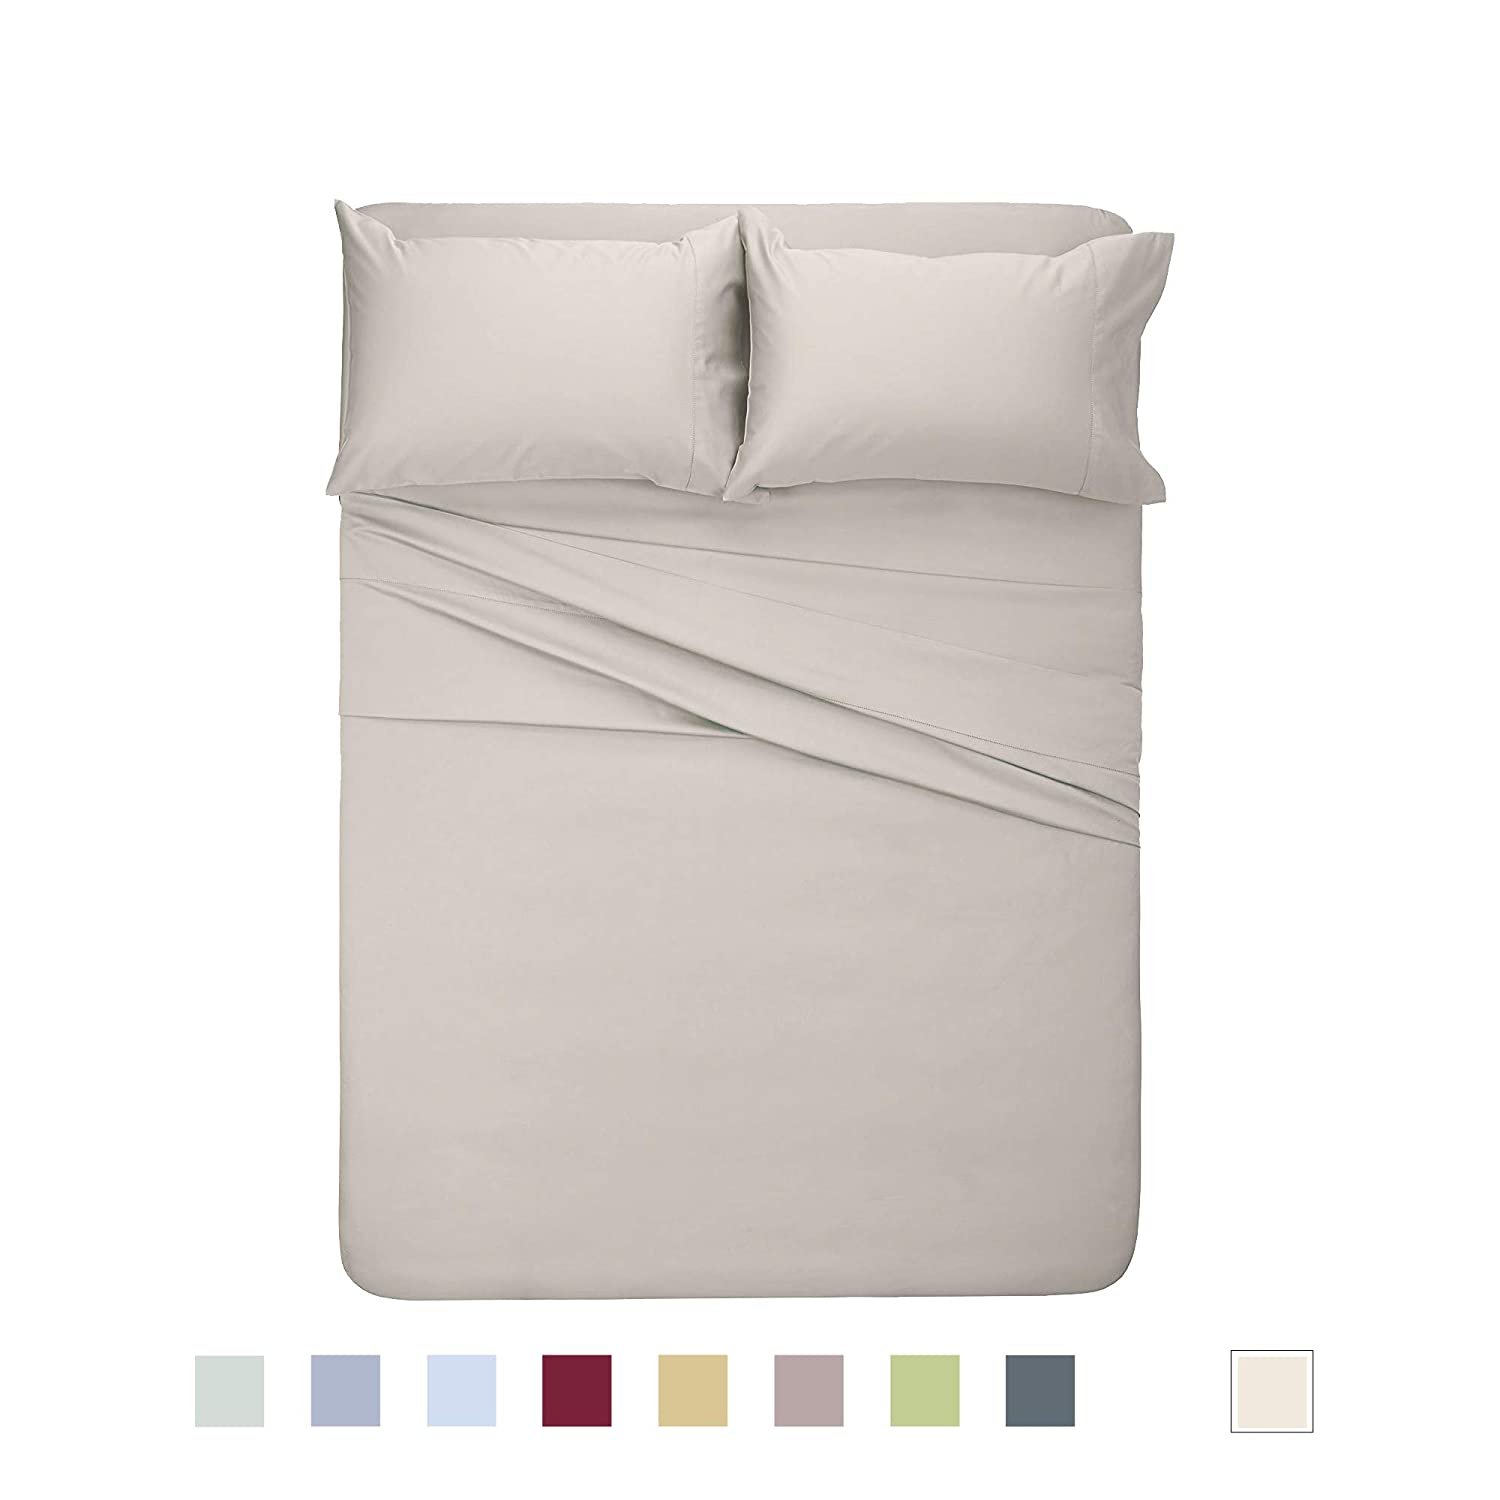 Y2L Classic Bamboo Sheets 4 Piece Bed Sheet Set -100/% Viscose from Bedding Luxuriously Soft and Comfortable Cool Bedding Best for Gift 10 Colors Sheet King, Sky